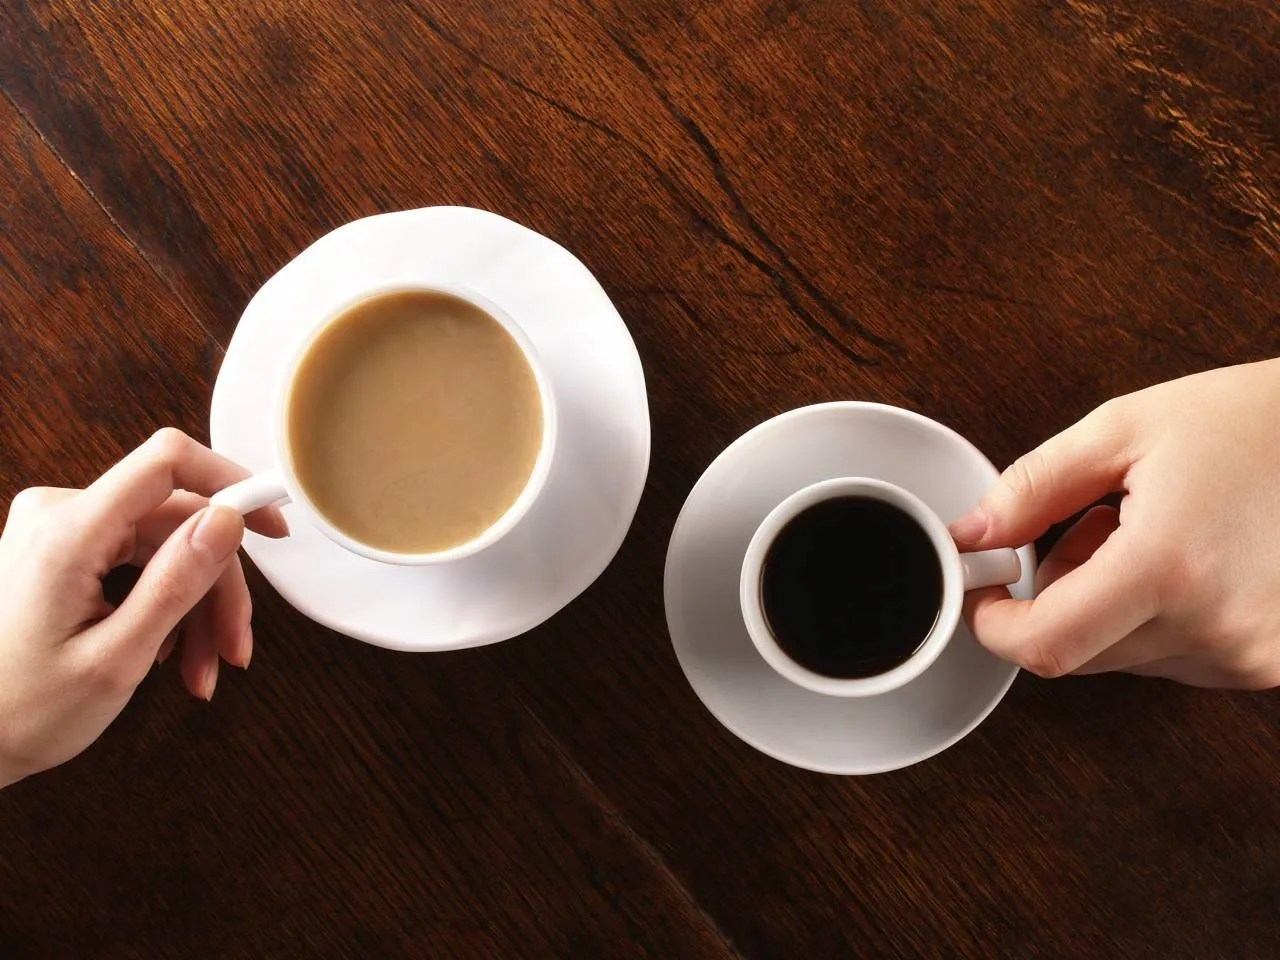 Image result for tea and coffe